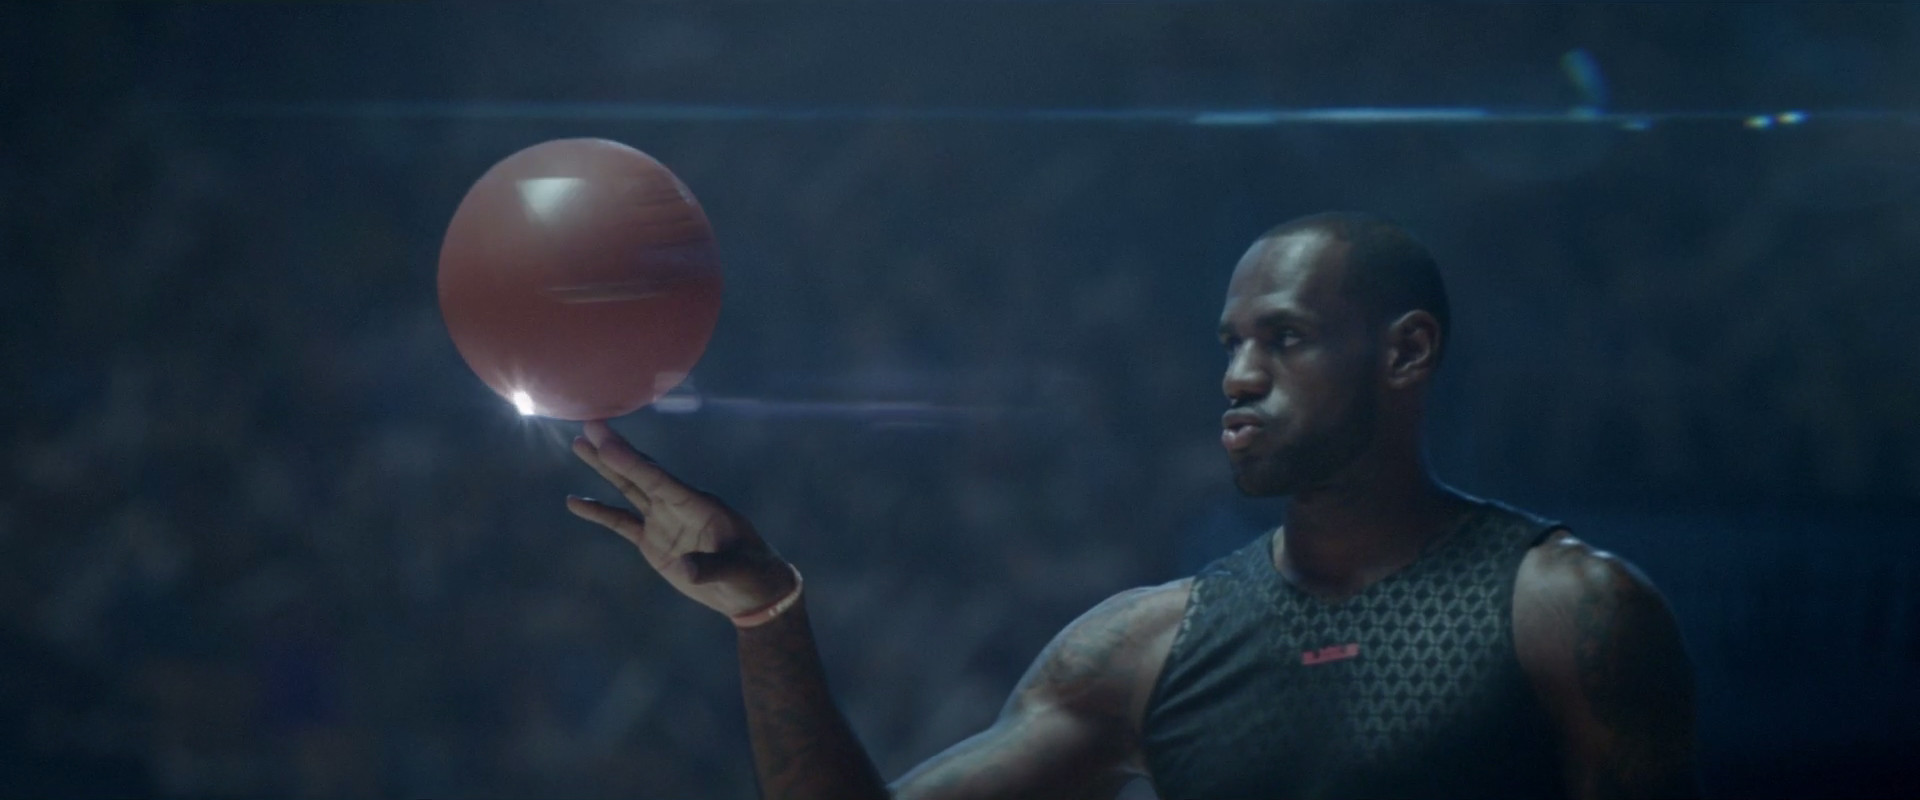 nike possibilities Client: nike agency: wieden+kennedy portland art director: sezay altinok copywriter: edward harrison director: nicolai fuglsig photography: ture lillegraven music: the kills the film features basketball star and reigning nba mvp, lebron james world no 1 tennis icon serena williams gerard pique of fc barcelona.